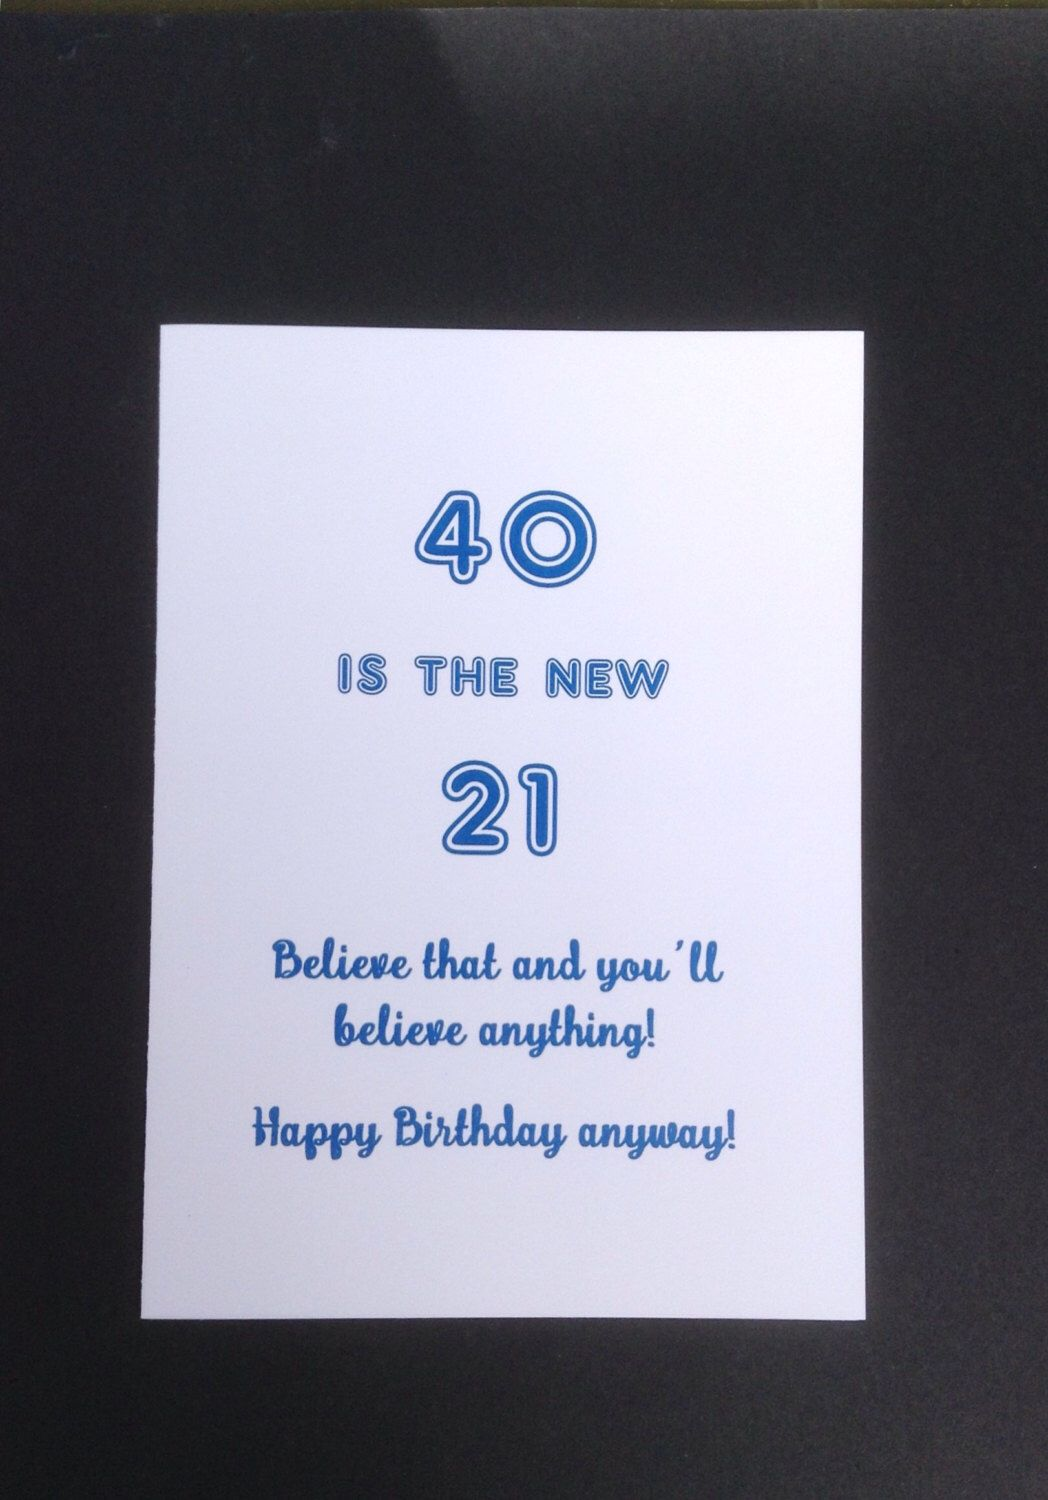 40th birthday cards funny cards for 40th birthday milestone 40th birthday cards funny cards for 40th birthday milestone birthday card 40thbirthdaycards kristyandbryce Image collections